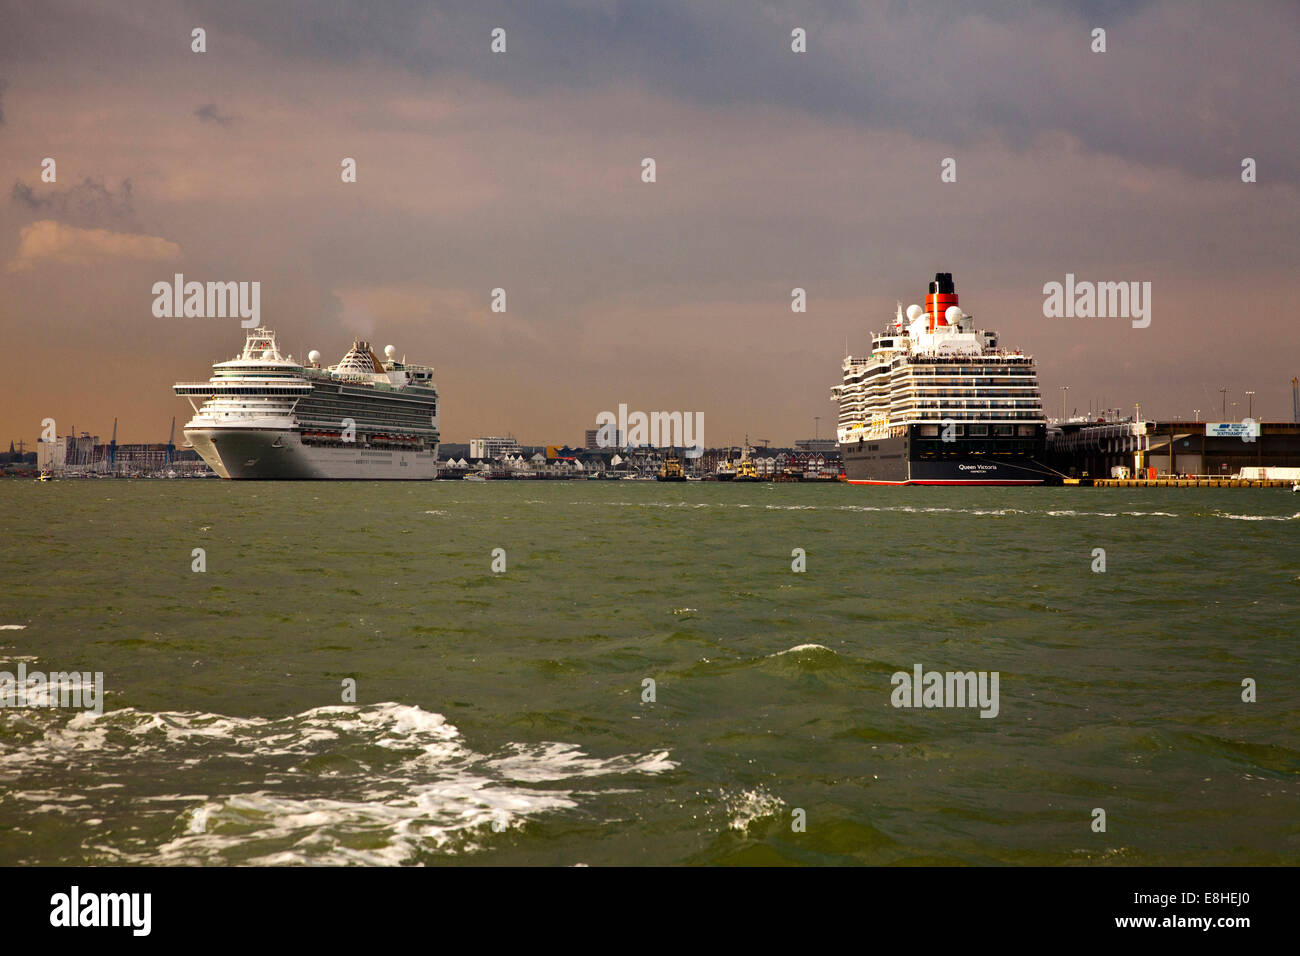 Cruise liners  Queen Elizabeth 2 and  Azura in dock at Southampton - Stock Image